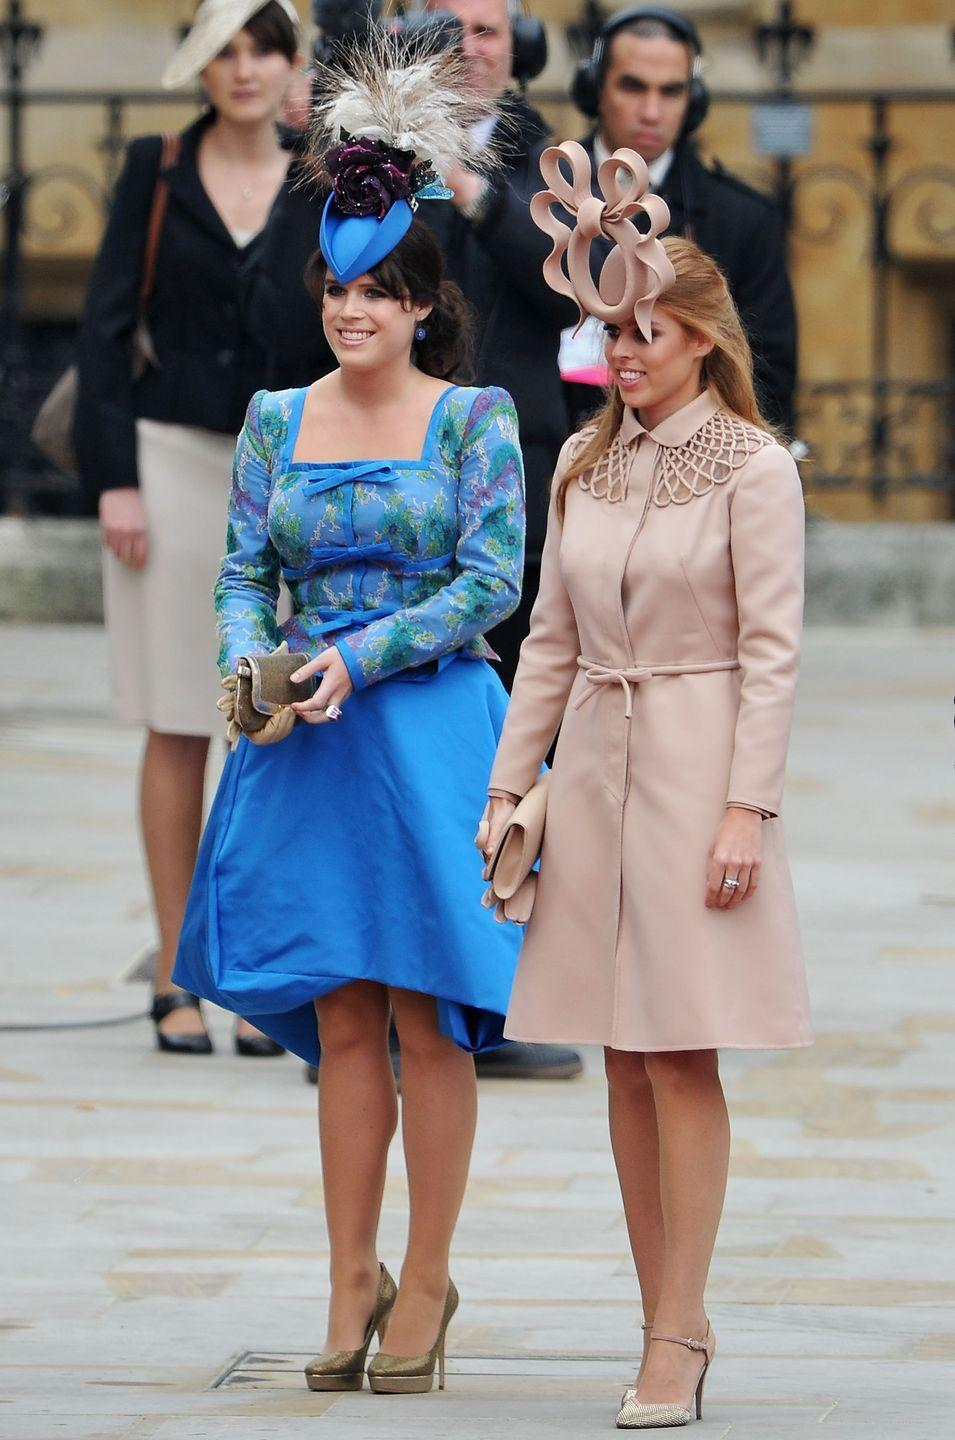 """<p>Prince William's cousins were the breakout stars of his wedding, though they probably didn't want to be. The young royals were ruthlessly mocked by the internet for their <a href=""""https://www.harpersbazaar.com/celebrity/latest/a20748825/princess-eugenie-princess-beatrice-of-york-prince-willliam-kate-middleton-wedding/"""" rel=""""nofollow noopener"""" target=""""_blank"""" data-ylk=""""slk:over-the-top hats"""" class=""""link rapid-noclick-resp"""">over-the-top hats</a> and were even a <a href=""""https://www.pinterest.fr/pin/7951736822392177/"""" rel=""""nofollow noopener"""" target=""""_blank"""" data-ylk=""""slk:popular Halloween costume"""" class=""""link rapid-noclick-resp"""">popular Halloween costume</a> later that year. </p>"""